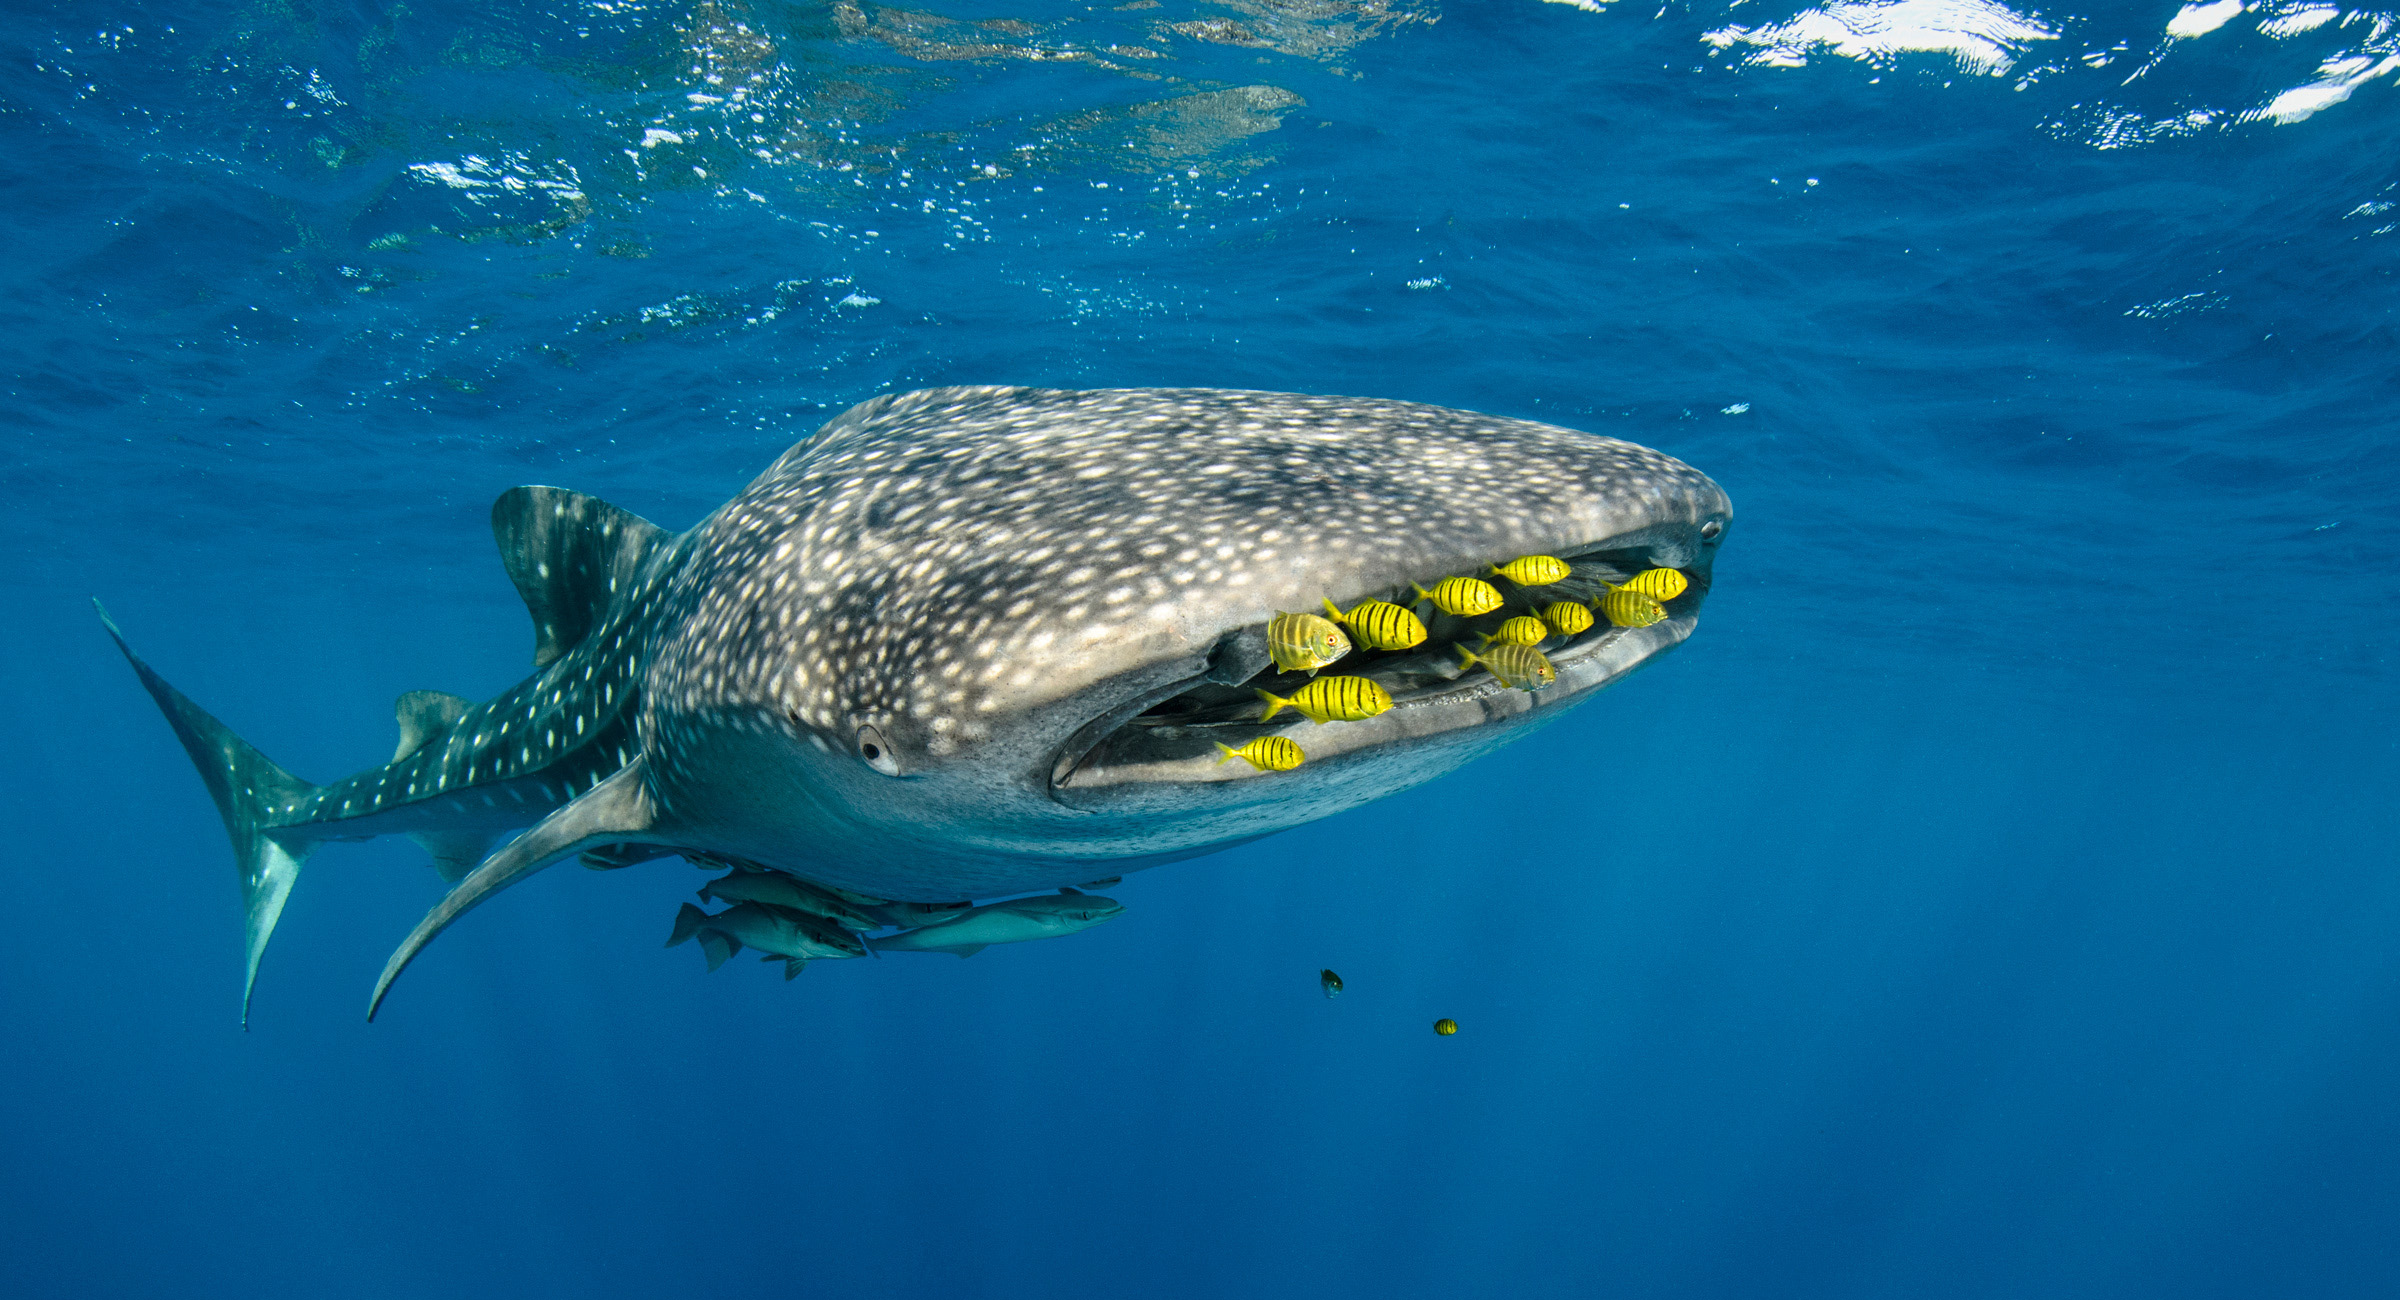 Golden trevally swim just in front of the mouth of a whale shark. Photo by conservation photographer Pete Oxford.